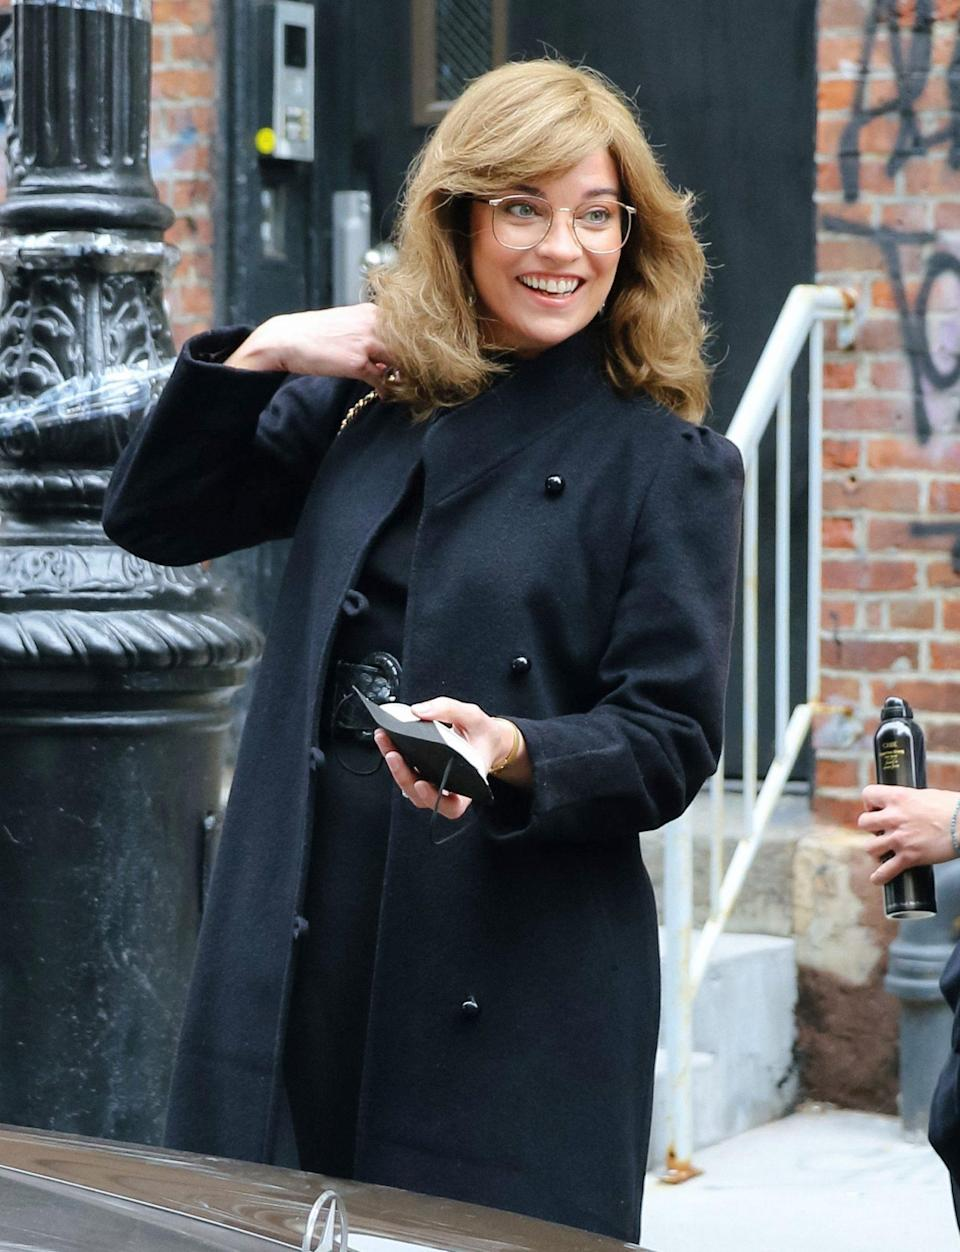 <p>Annie Murphy is seen filming an episode of <i>Russian Doll</i> on Thursday in N.Y.C. </p>